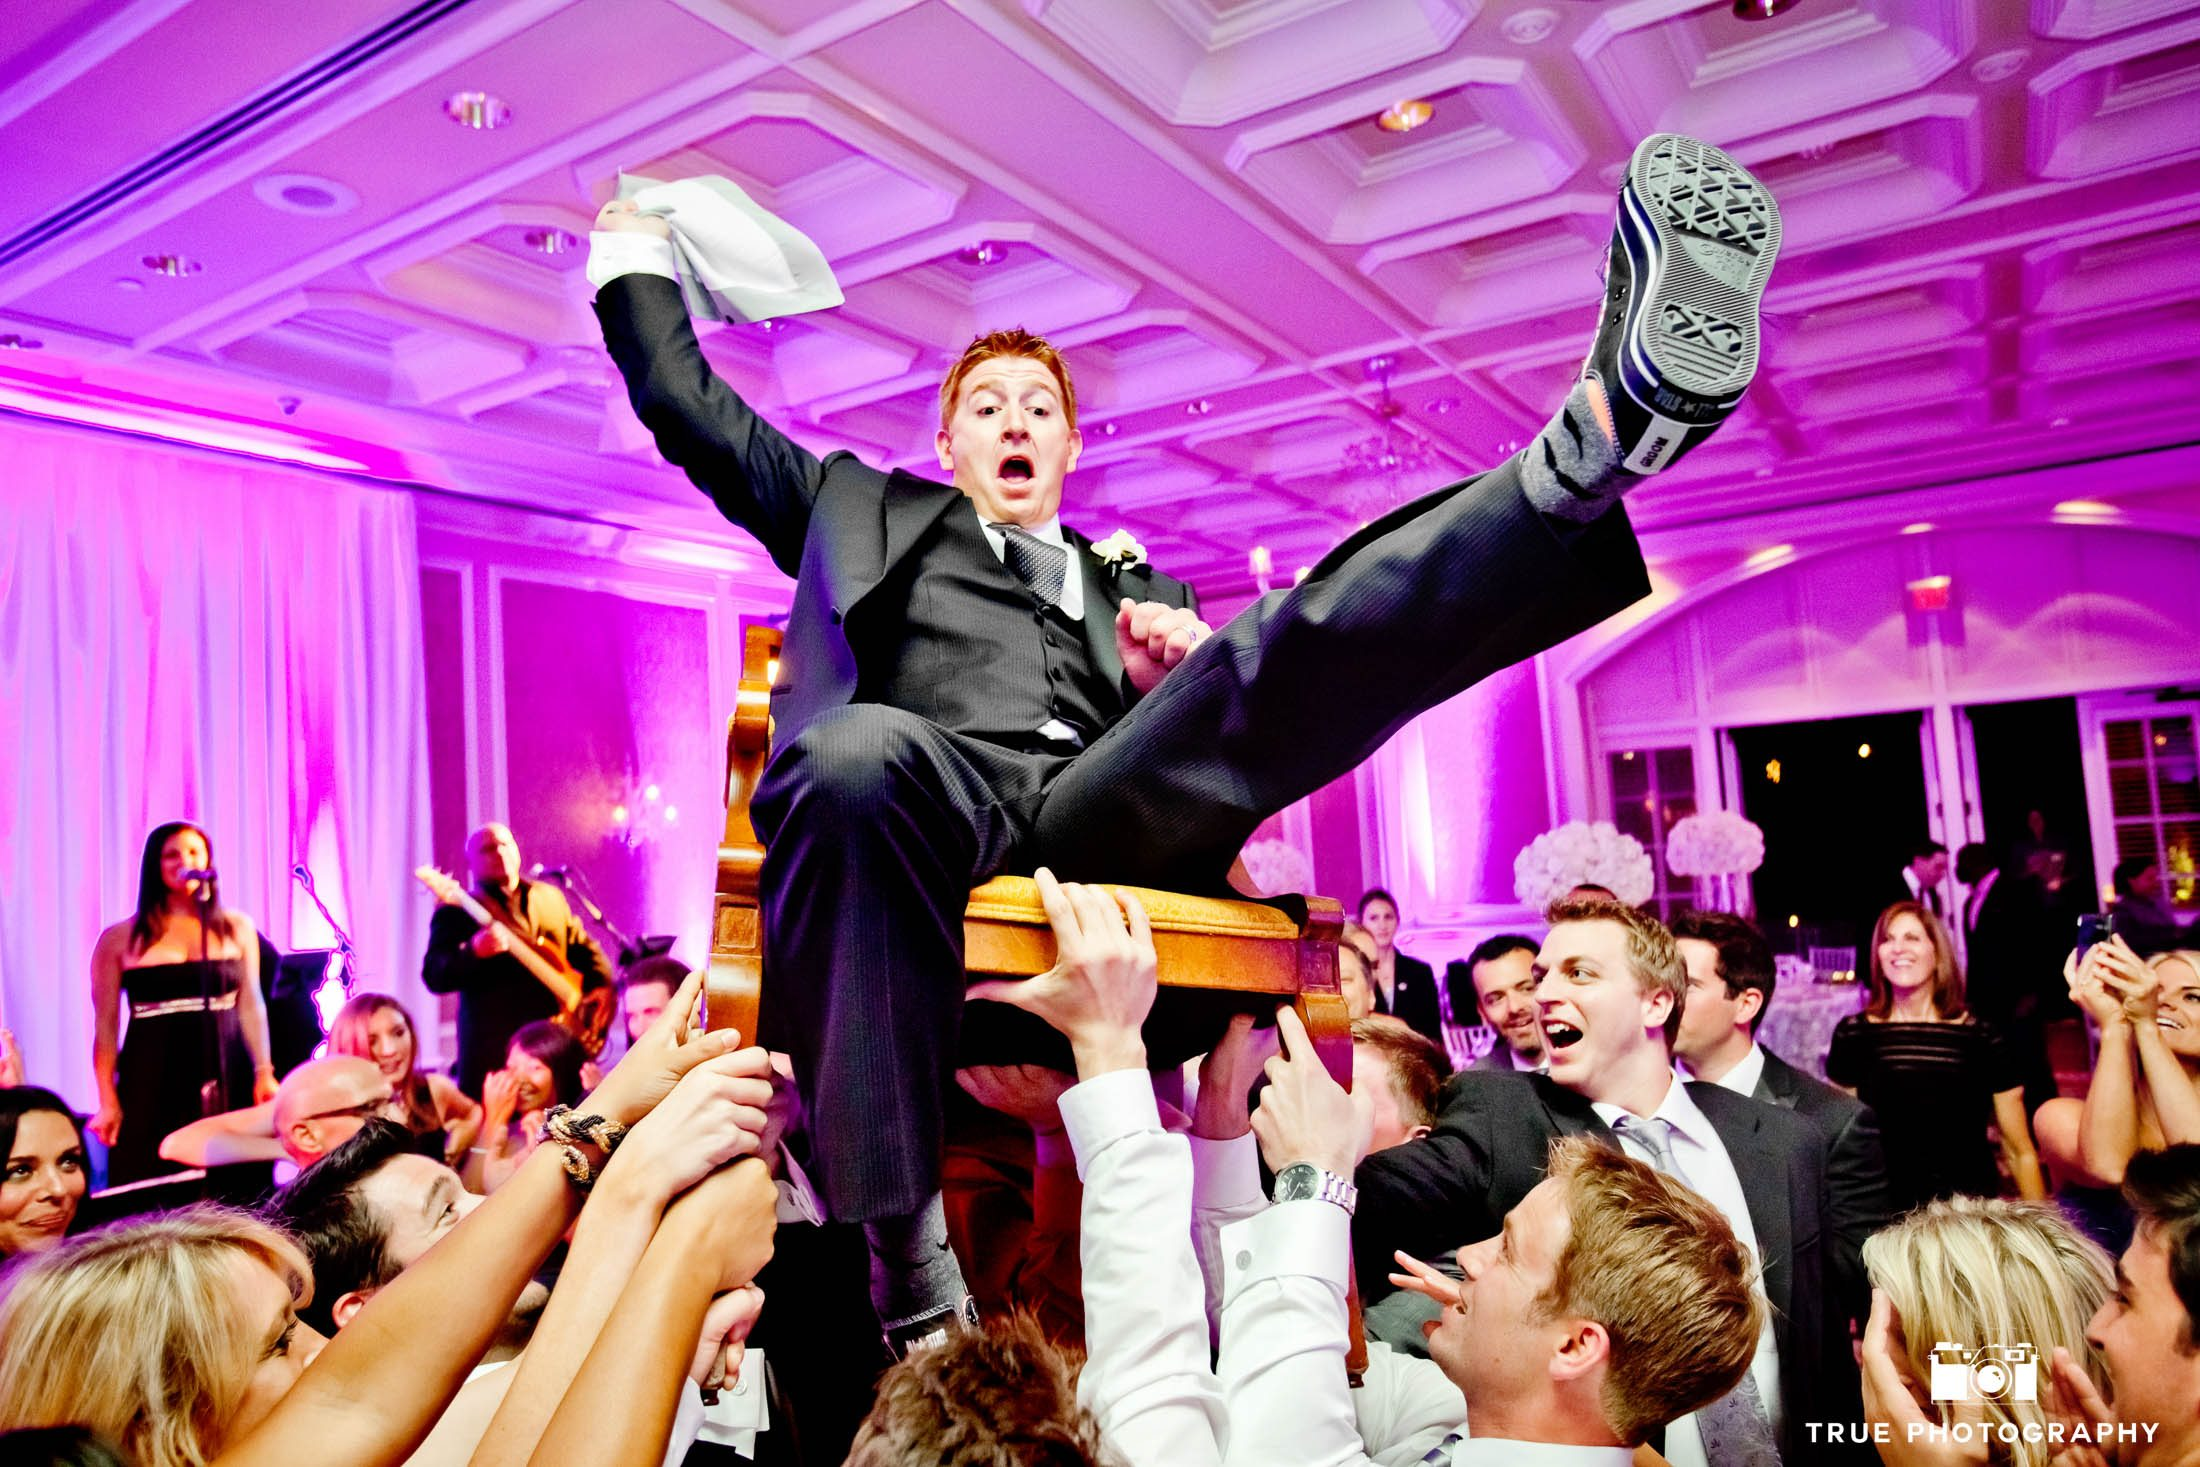 Groom is lifted in air by guests for hora dance